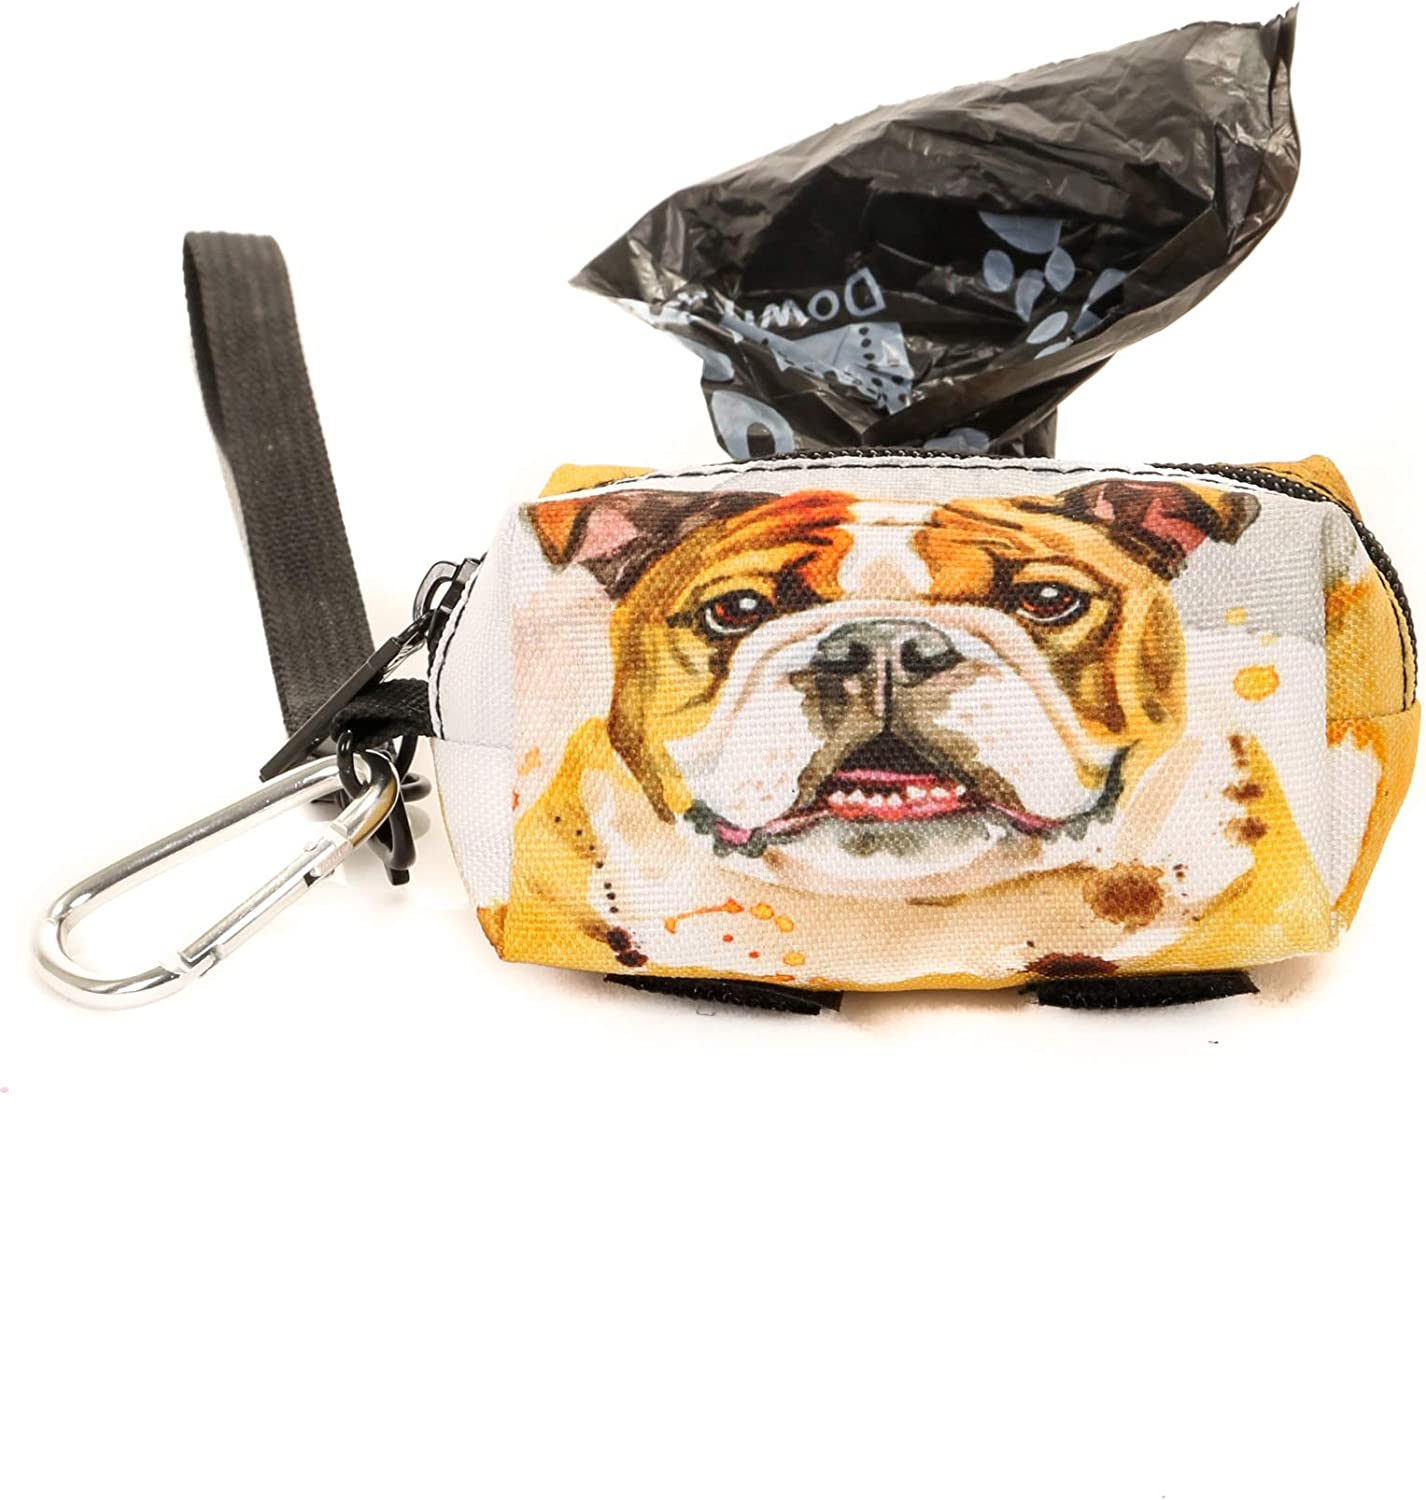 Doggy Poop Waste Bag Dispenser for Fashionably Cute Owners and All Dog Breeds poopyCUTE DOGGIE Papillion Luxury Fashion Style